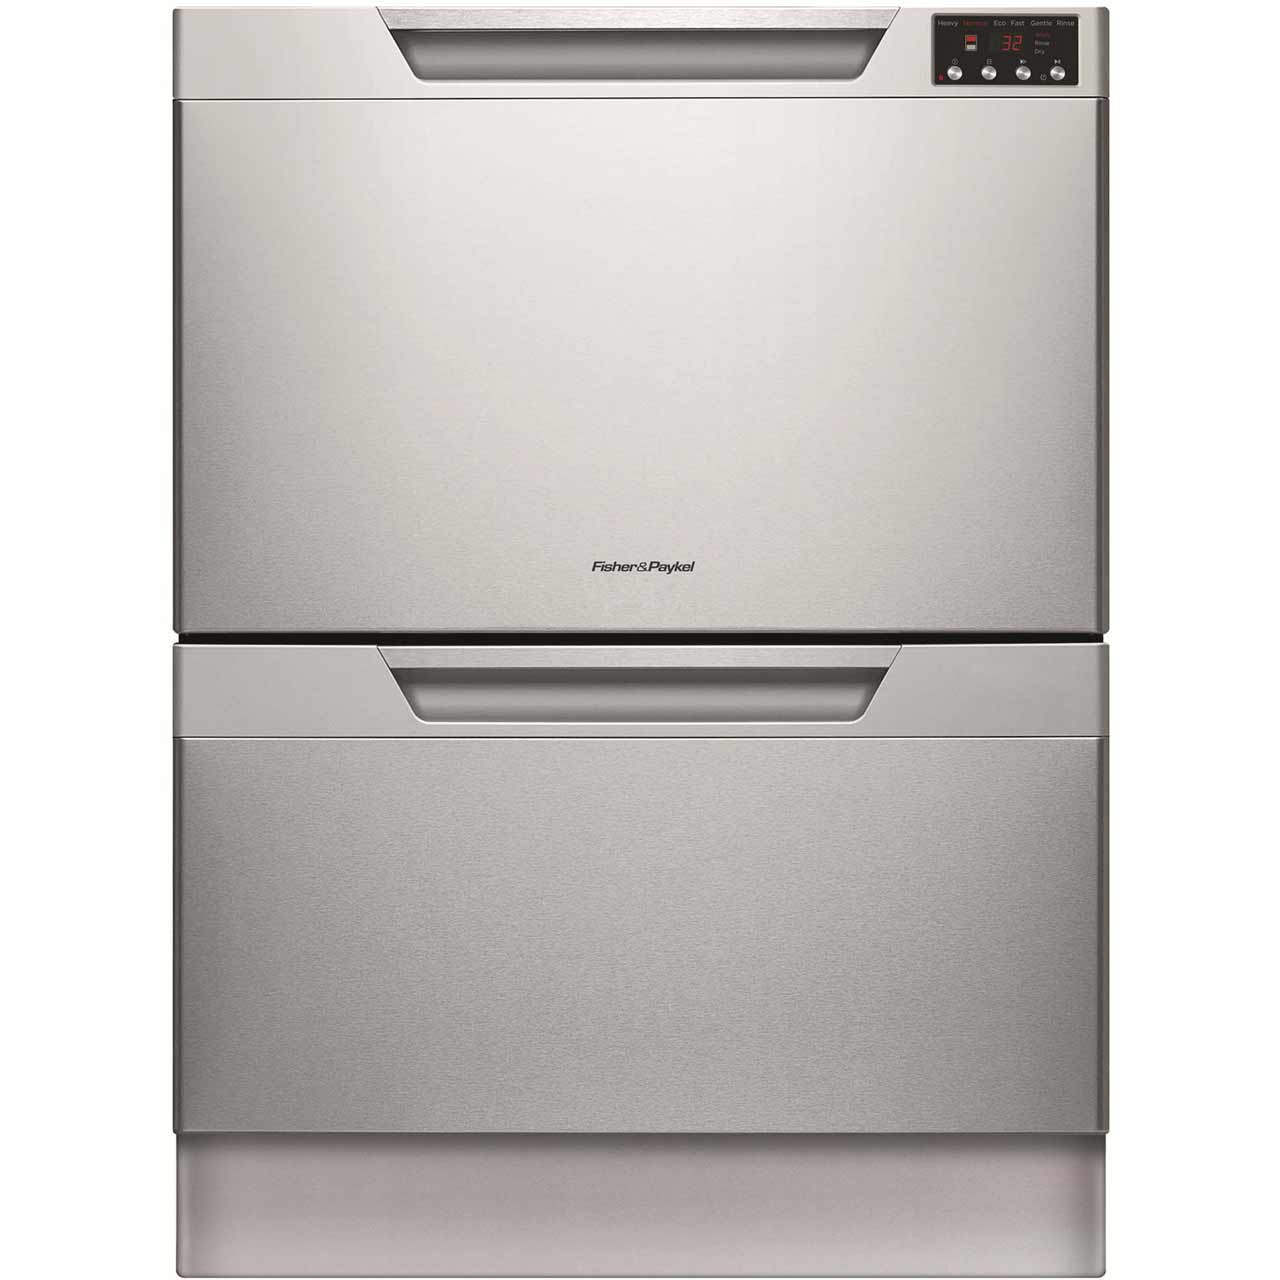 Fisher & Paykel Double DishDrawer? DD60DAHX8 Integrated Dishwasher in Stainless Steel